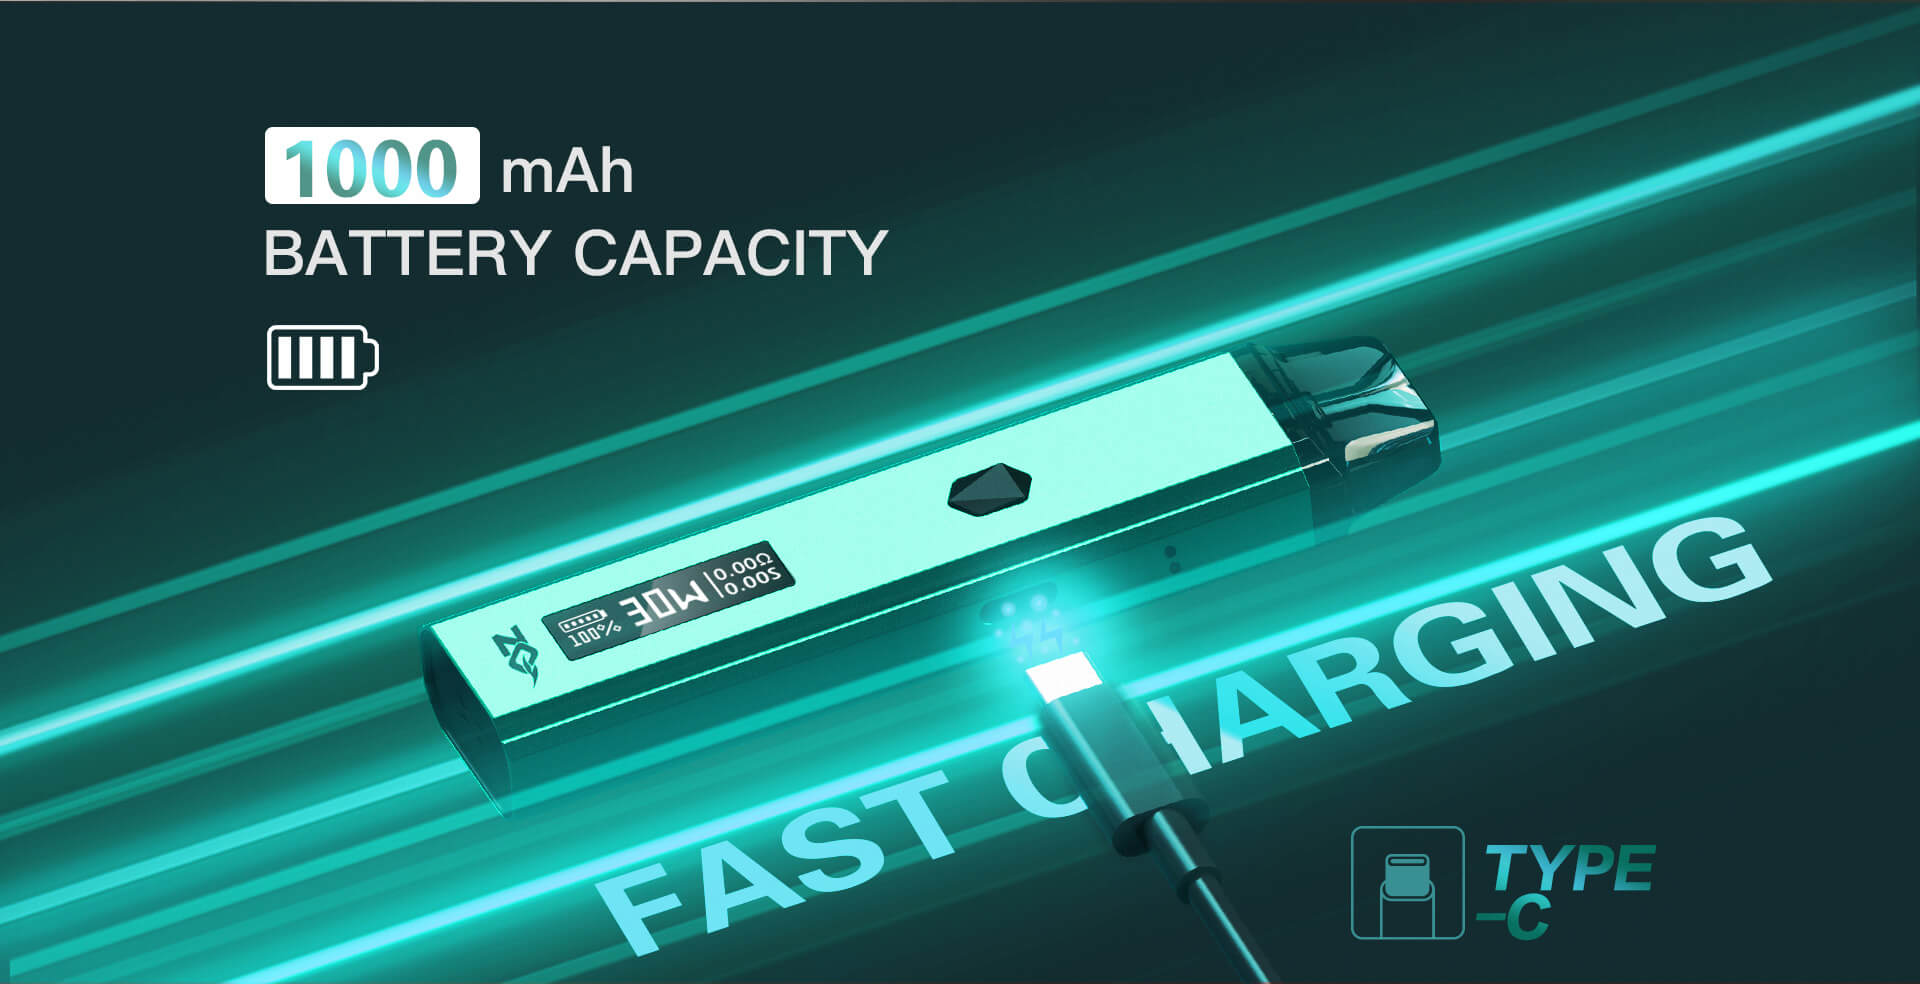 ZQ Xtal Pro Fast Charging - Type C Charger